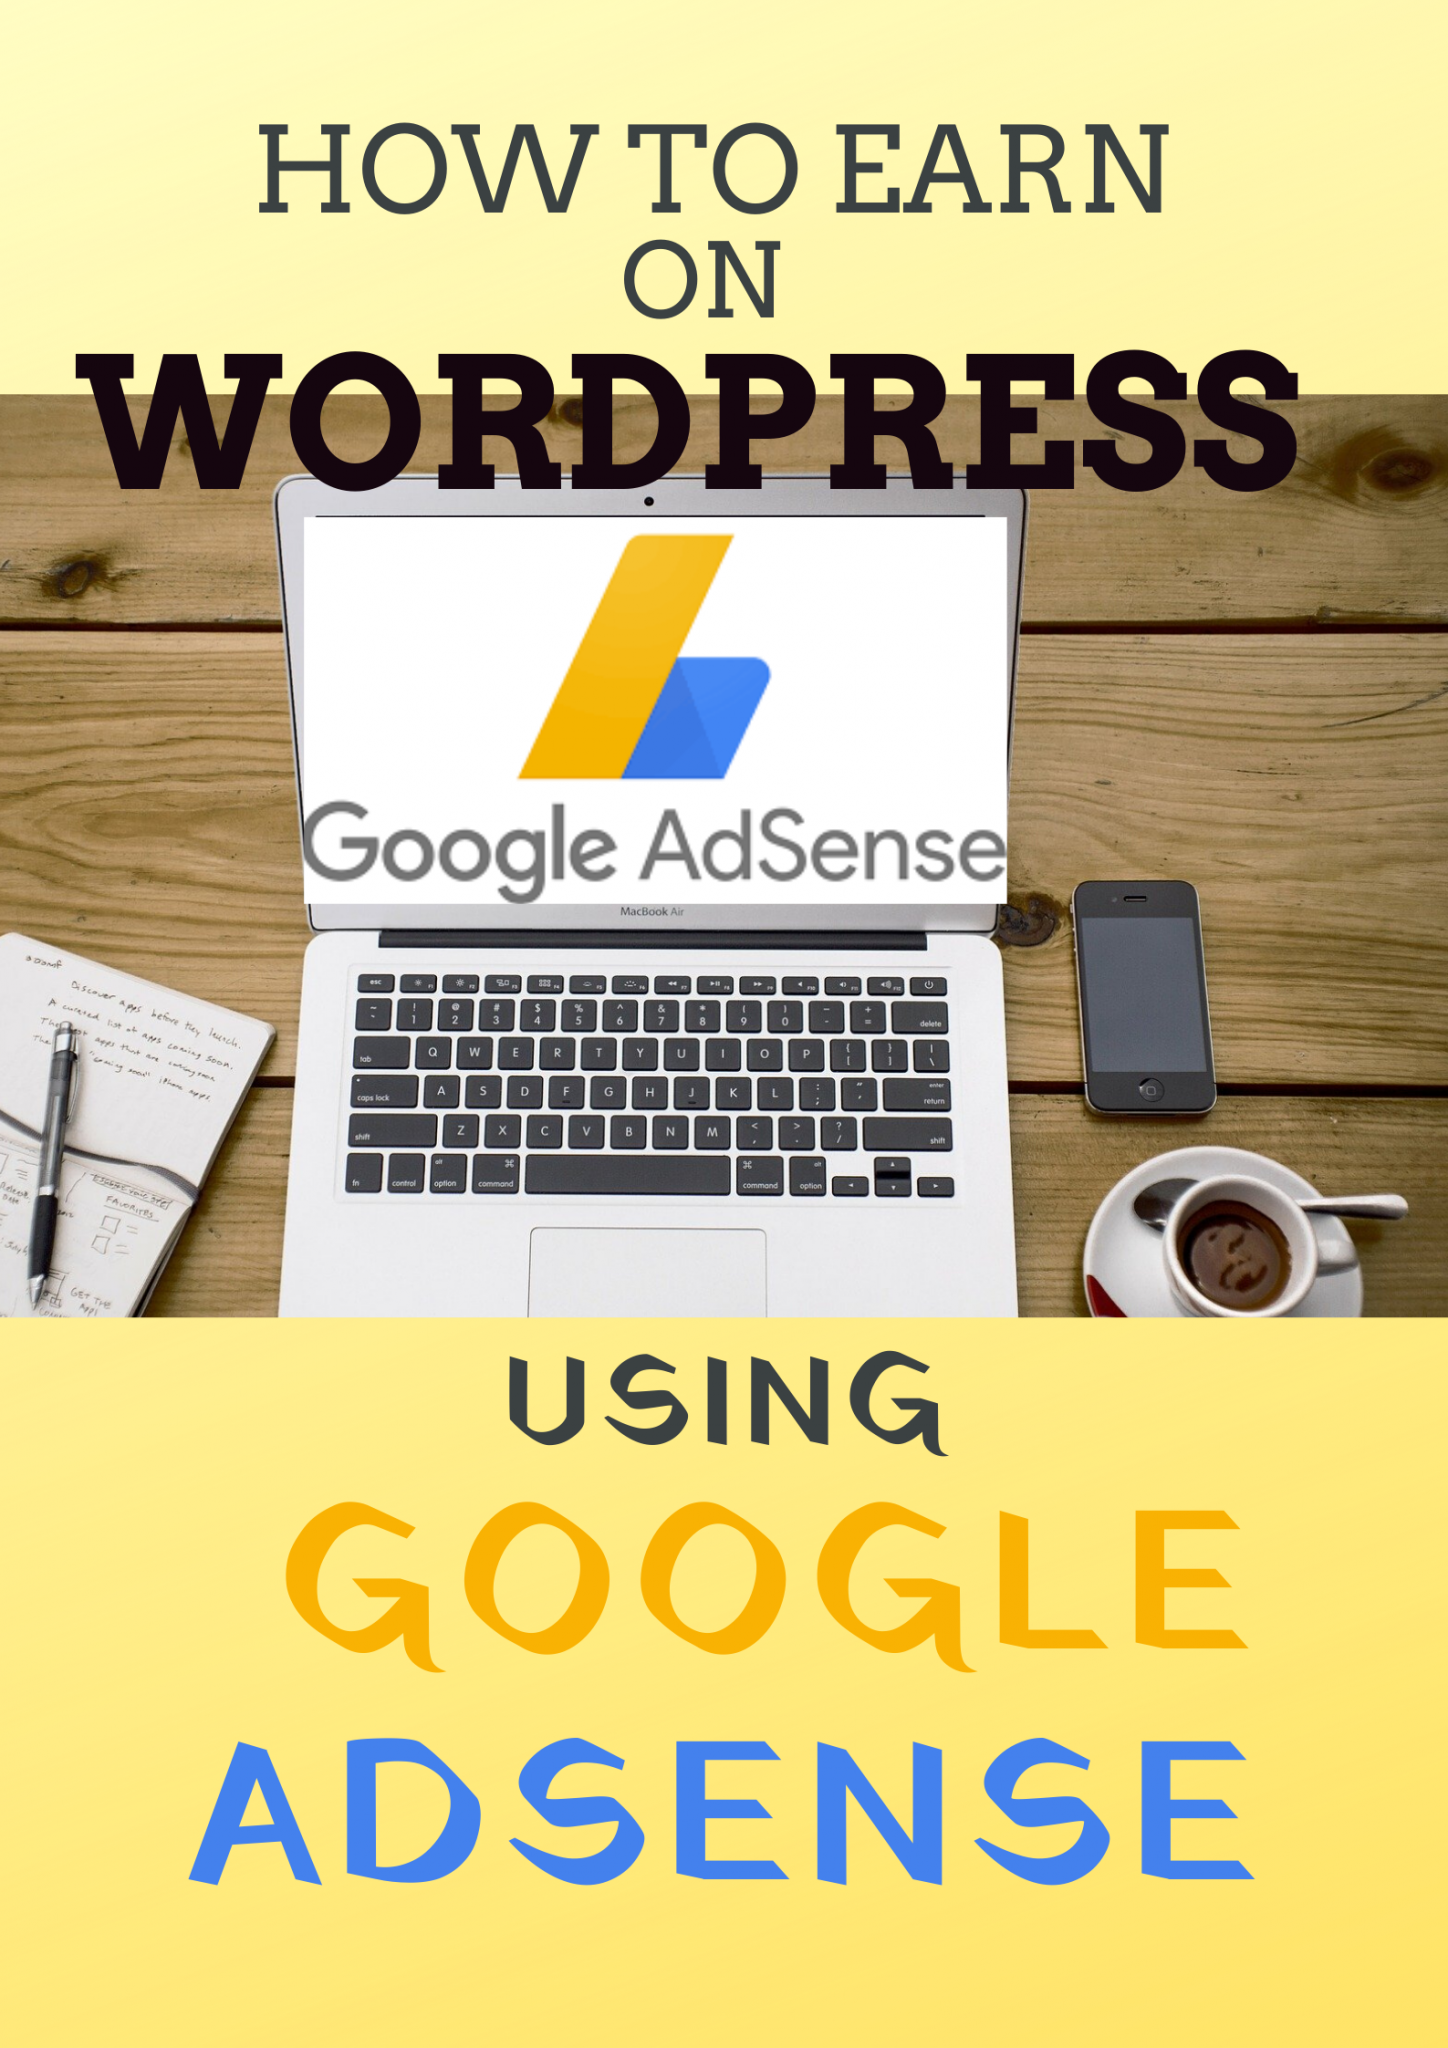 How To Set Up Google Adsense For Wordpress Bloggers Freelancing Hackers